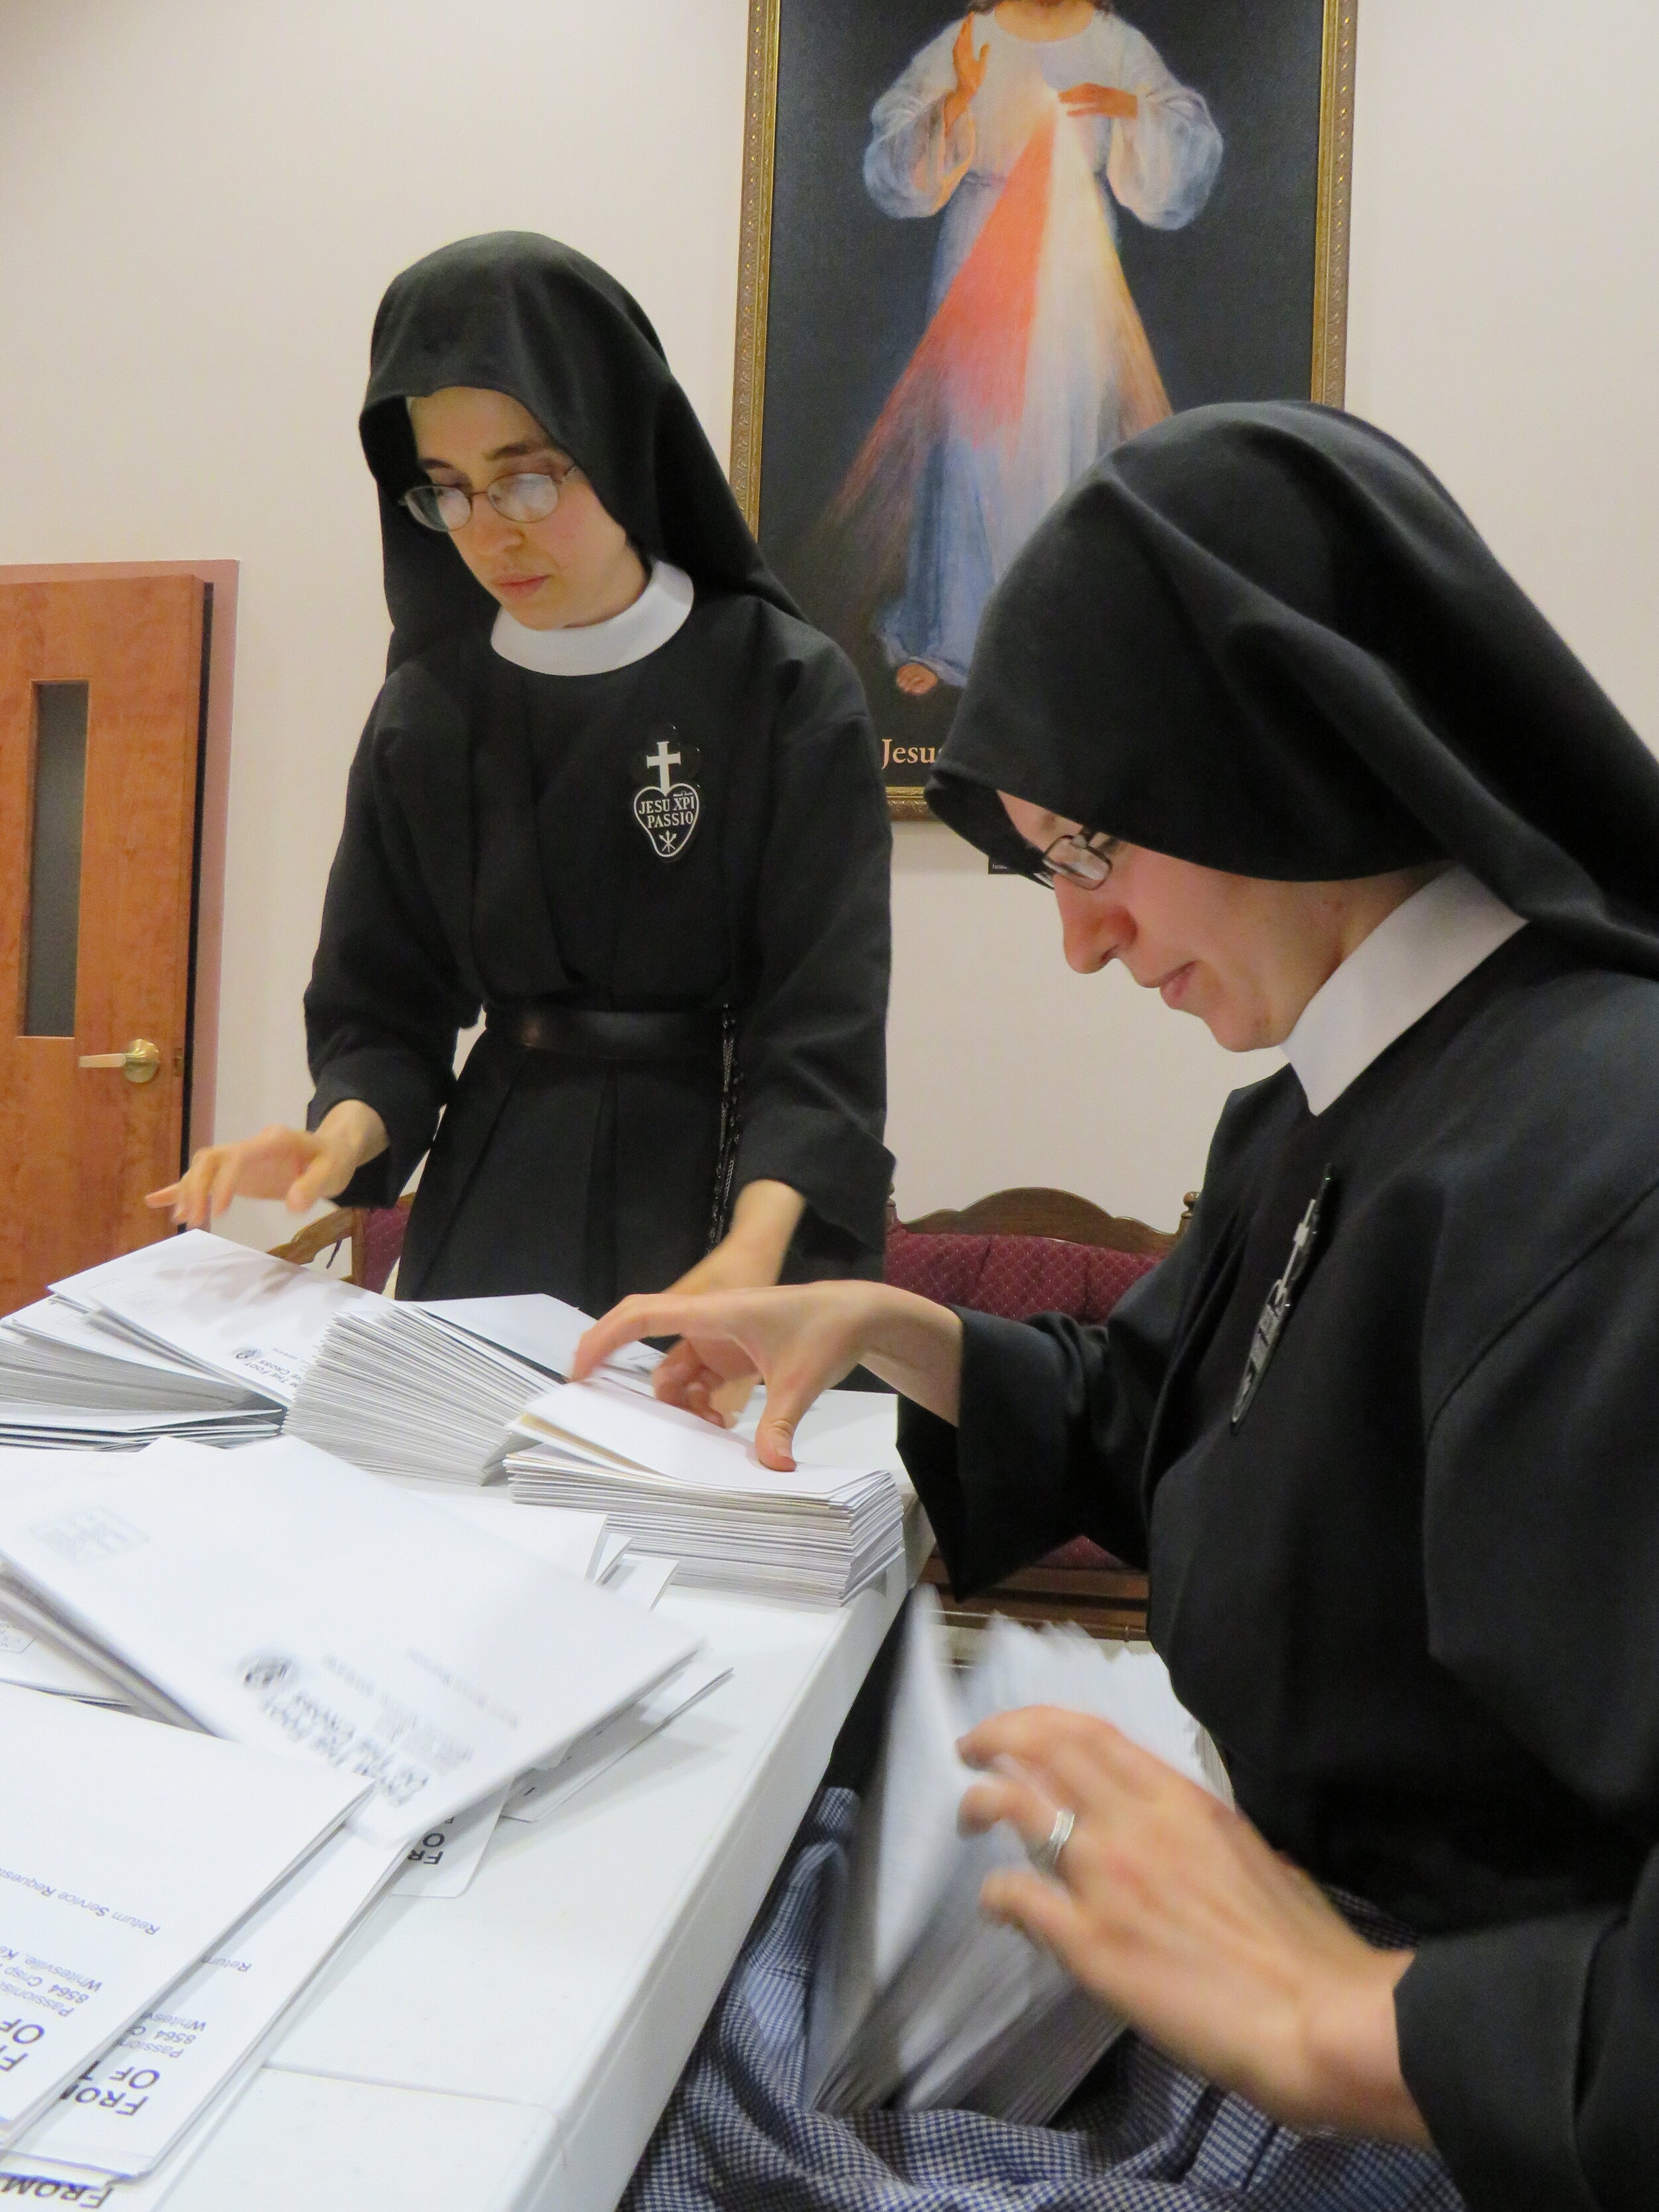 Sr. Mary Andrea and Sr. Frances Marie hard at work filling newsletters